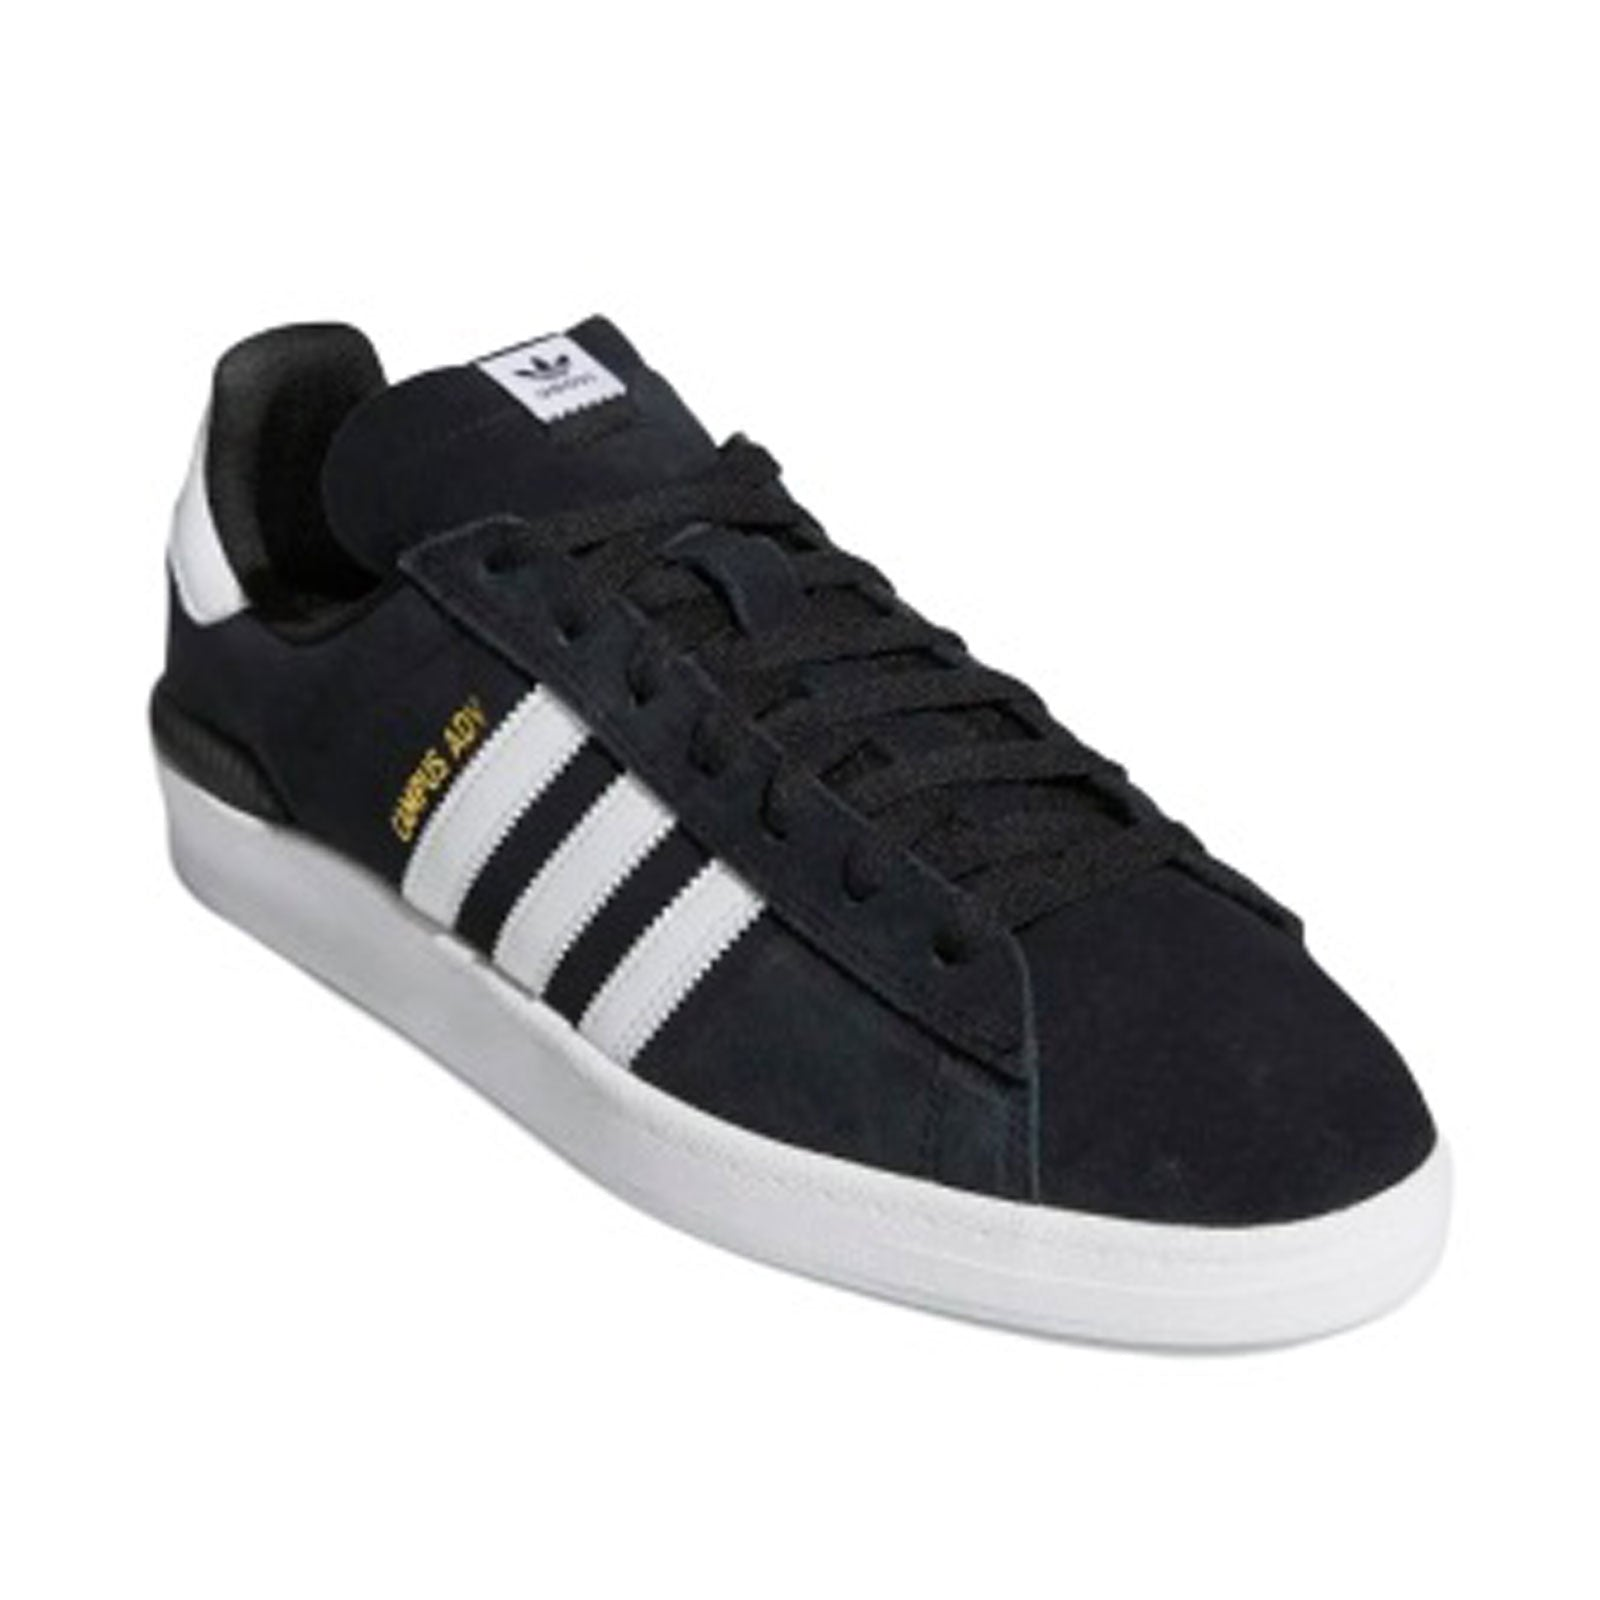 Adidas Campus Adv B22716 (Core Black / Cloud White)